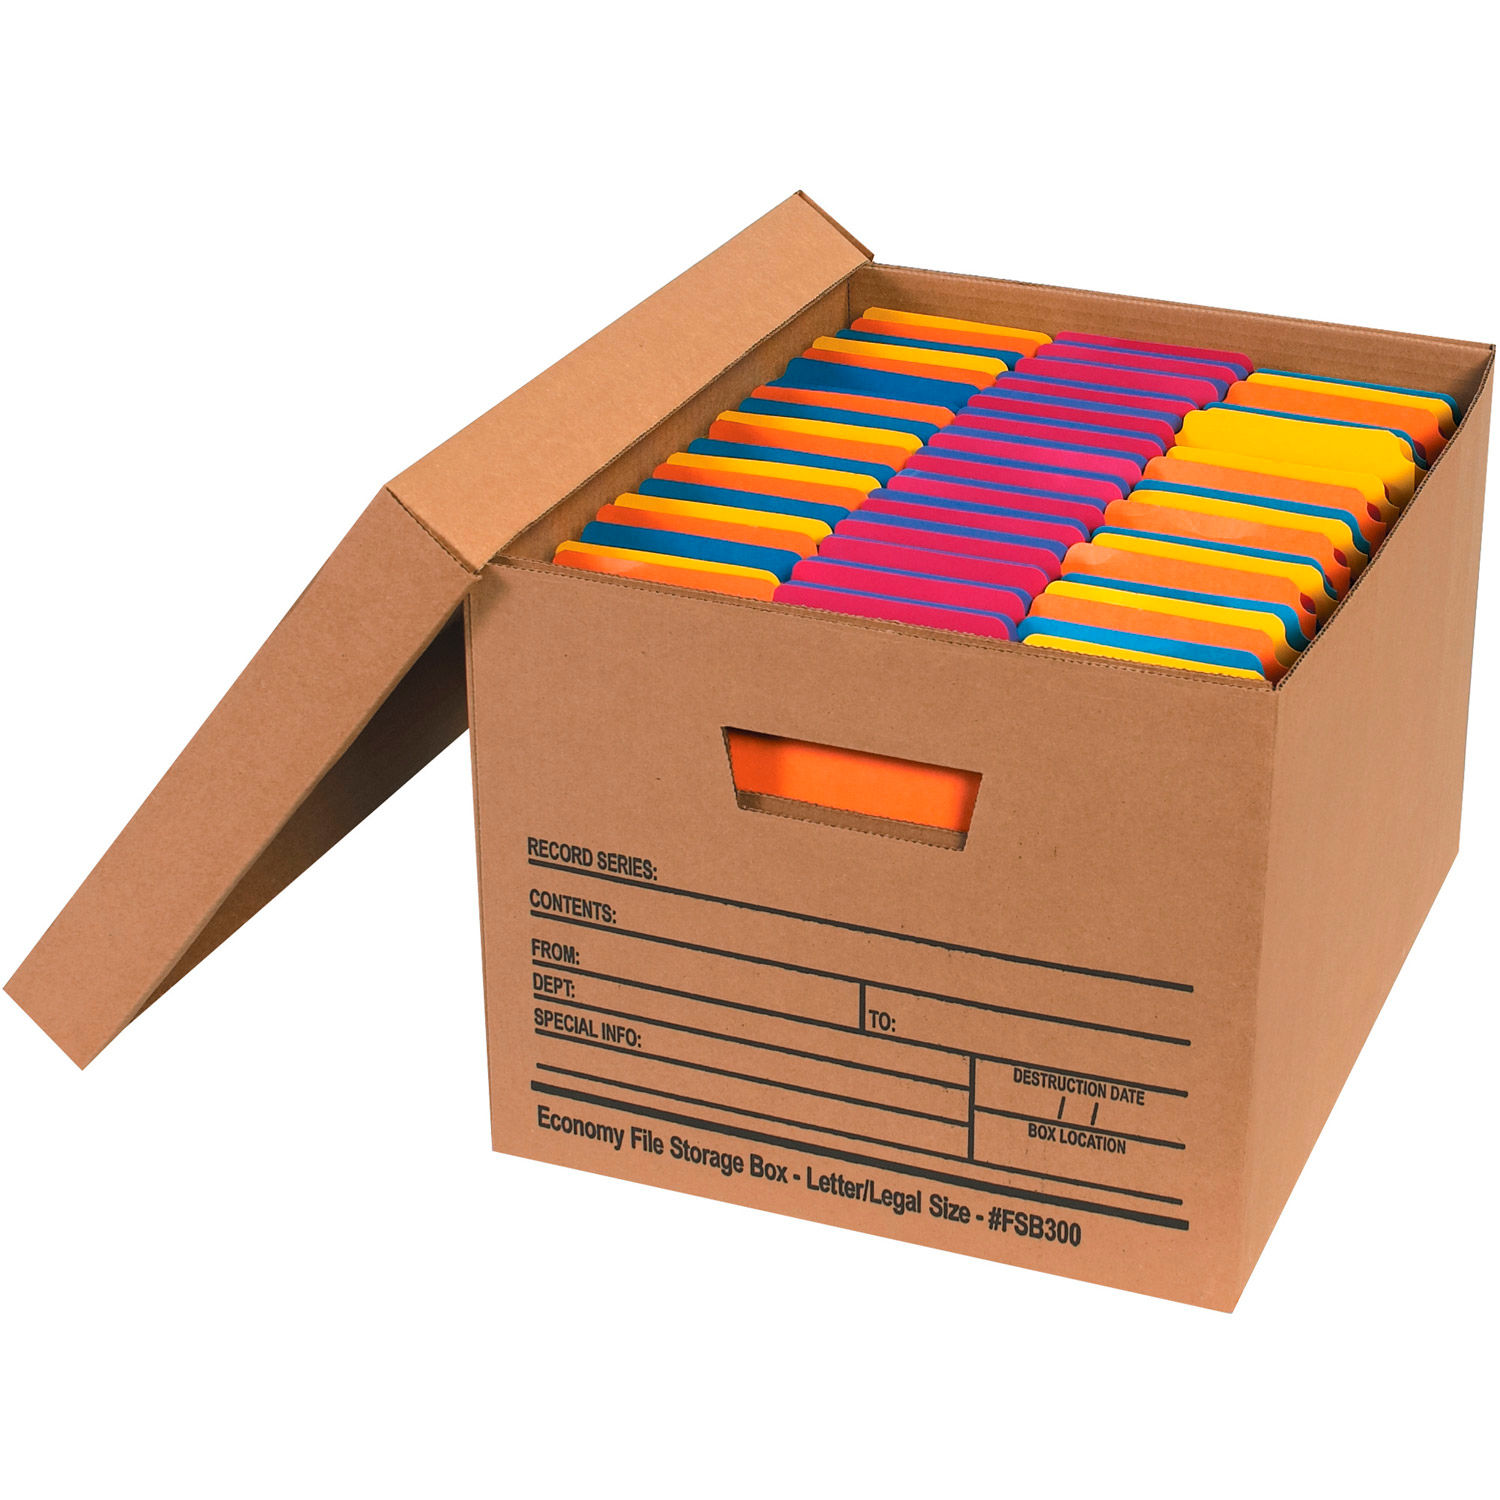 Bins, Totes & Containers | Boxes-Record Storage | Economy